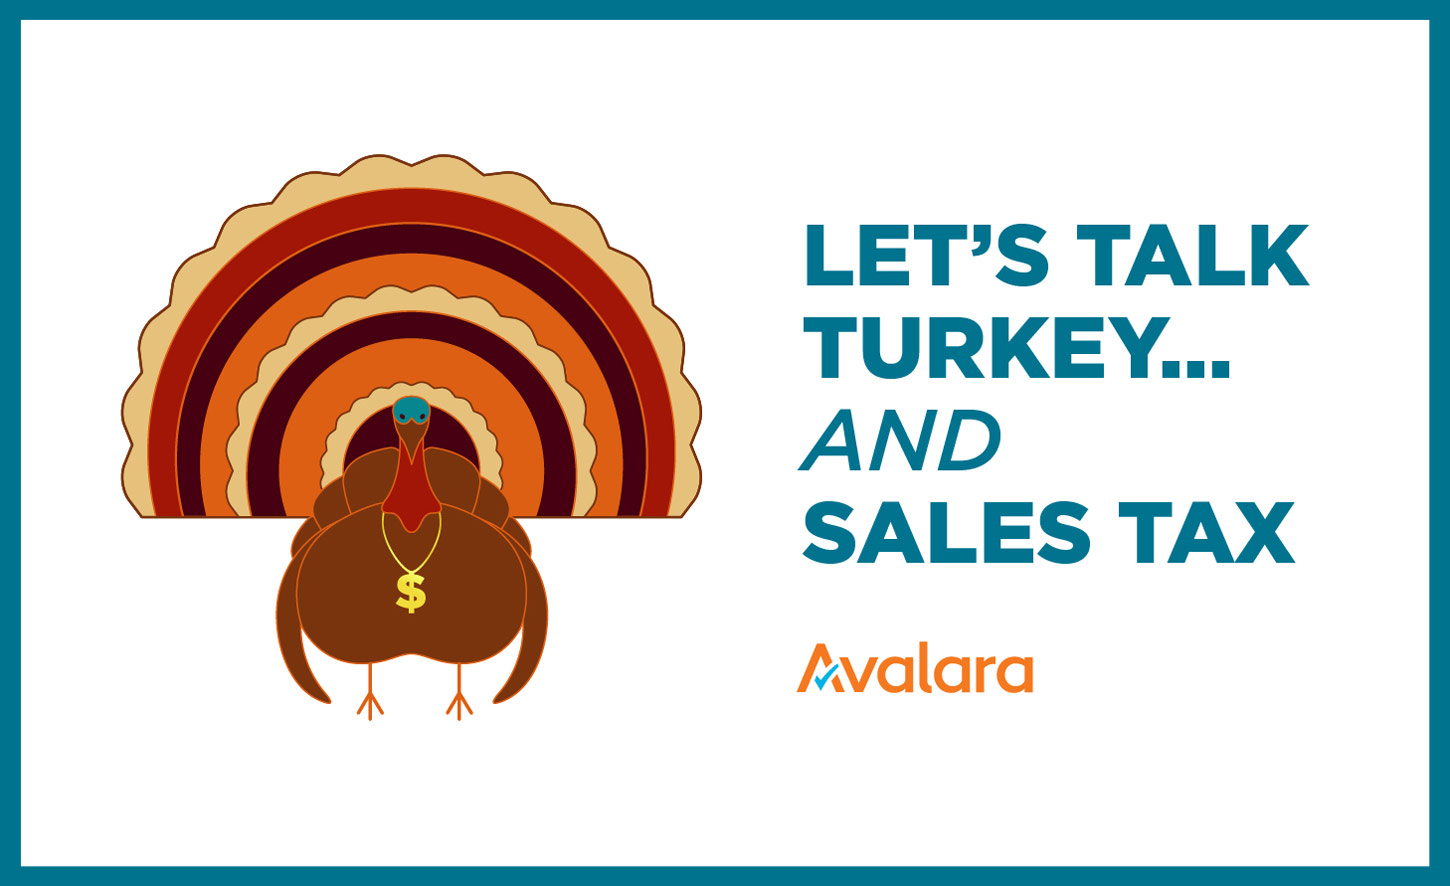 avalara-turkey-tax-linkedin.jpg